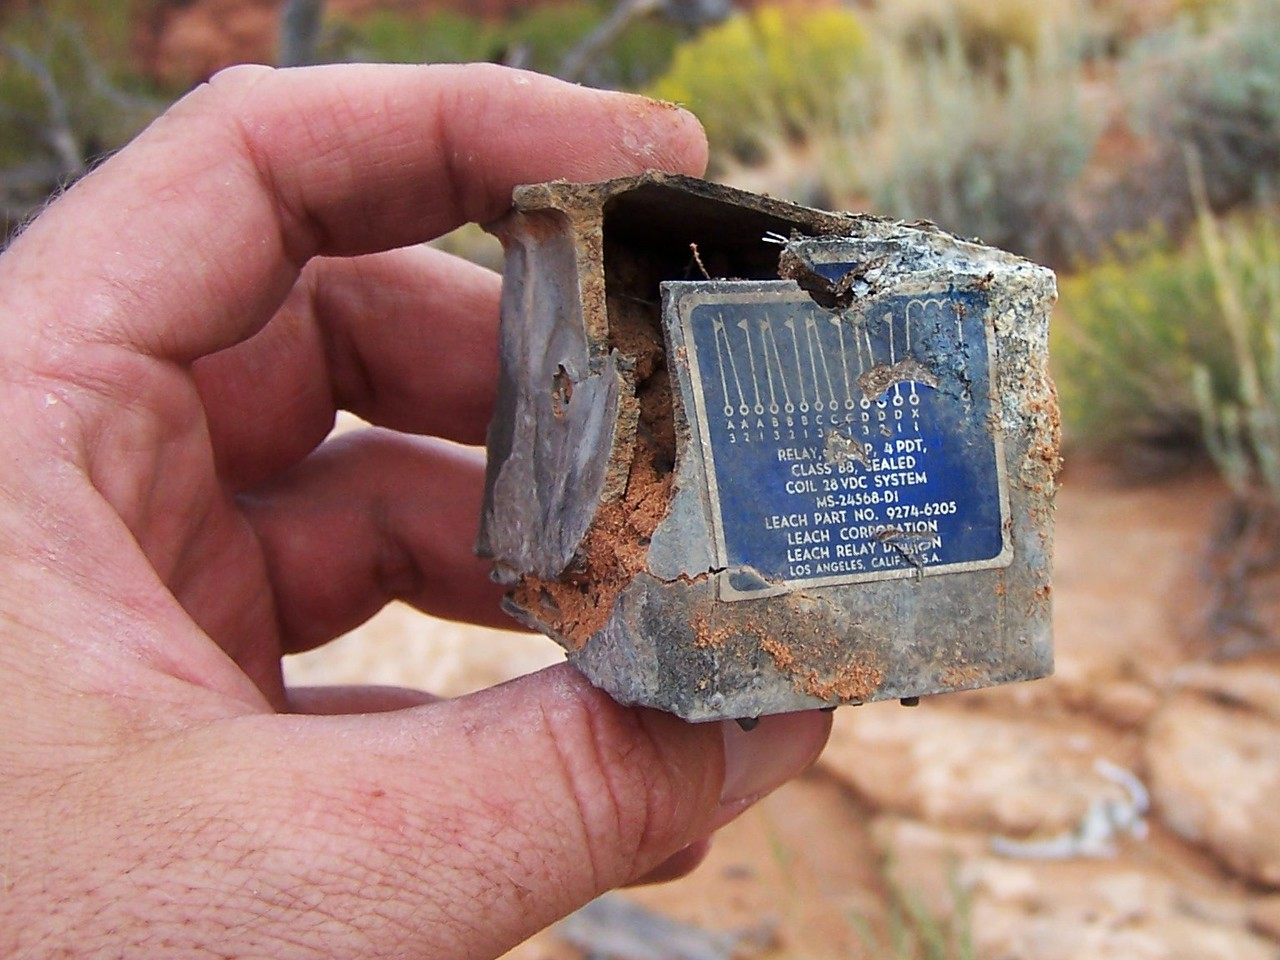 A burned electrical relay was found partially buried in the sandy surface.